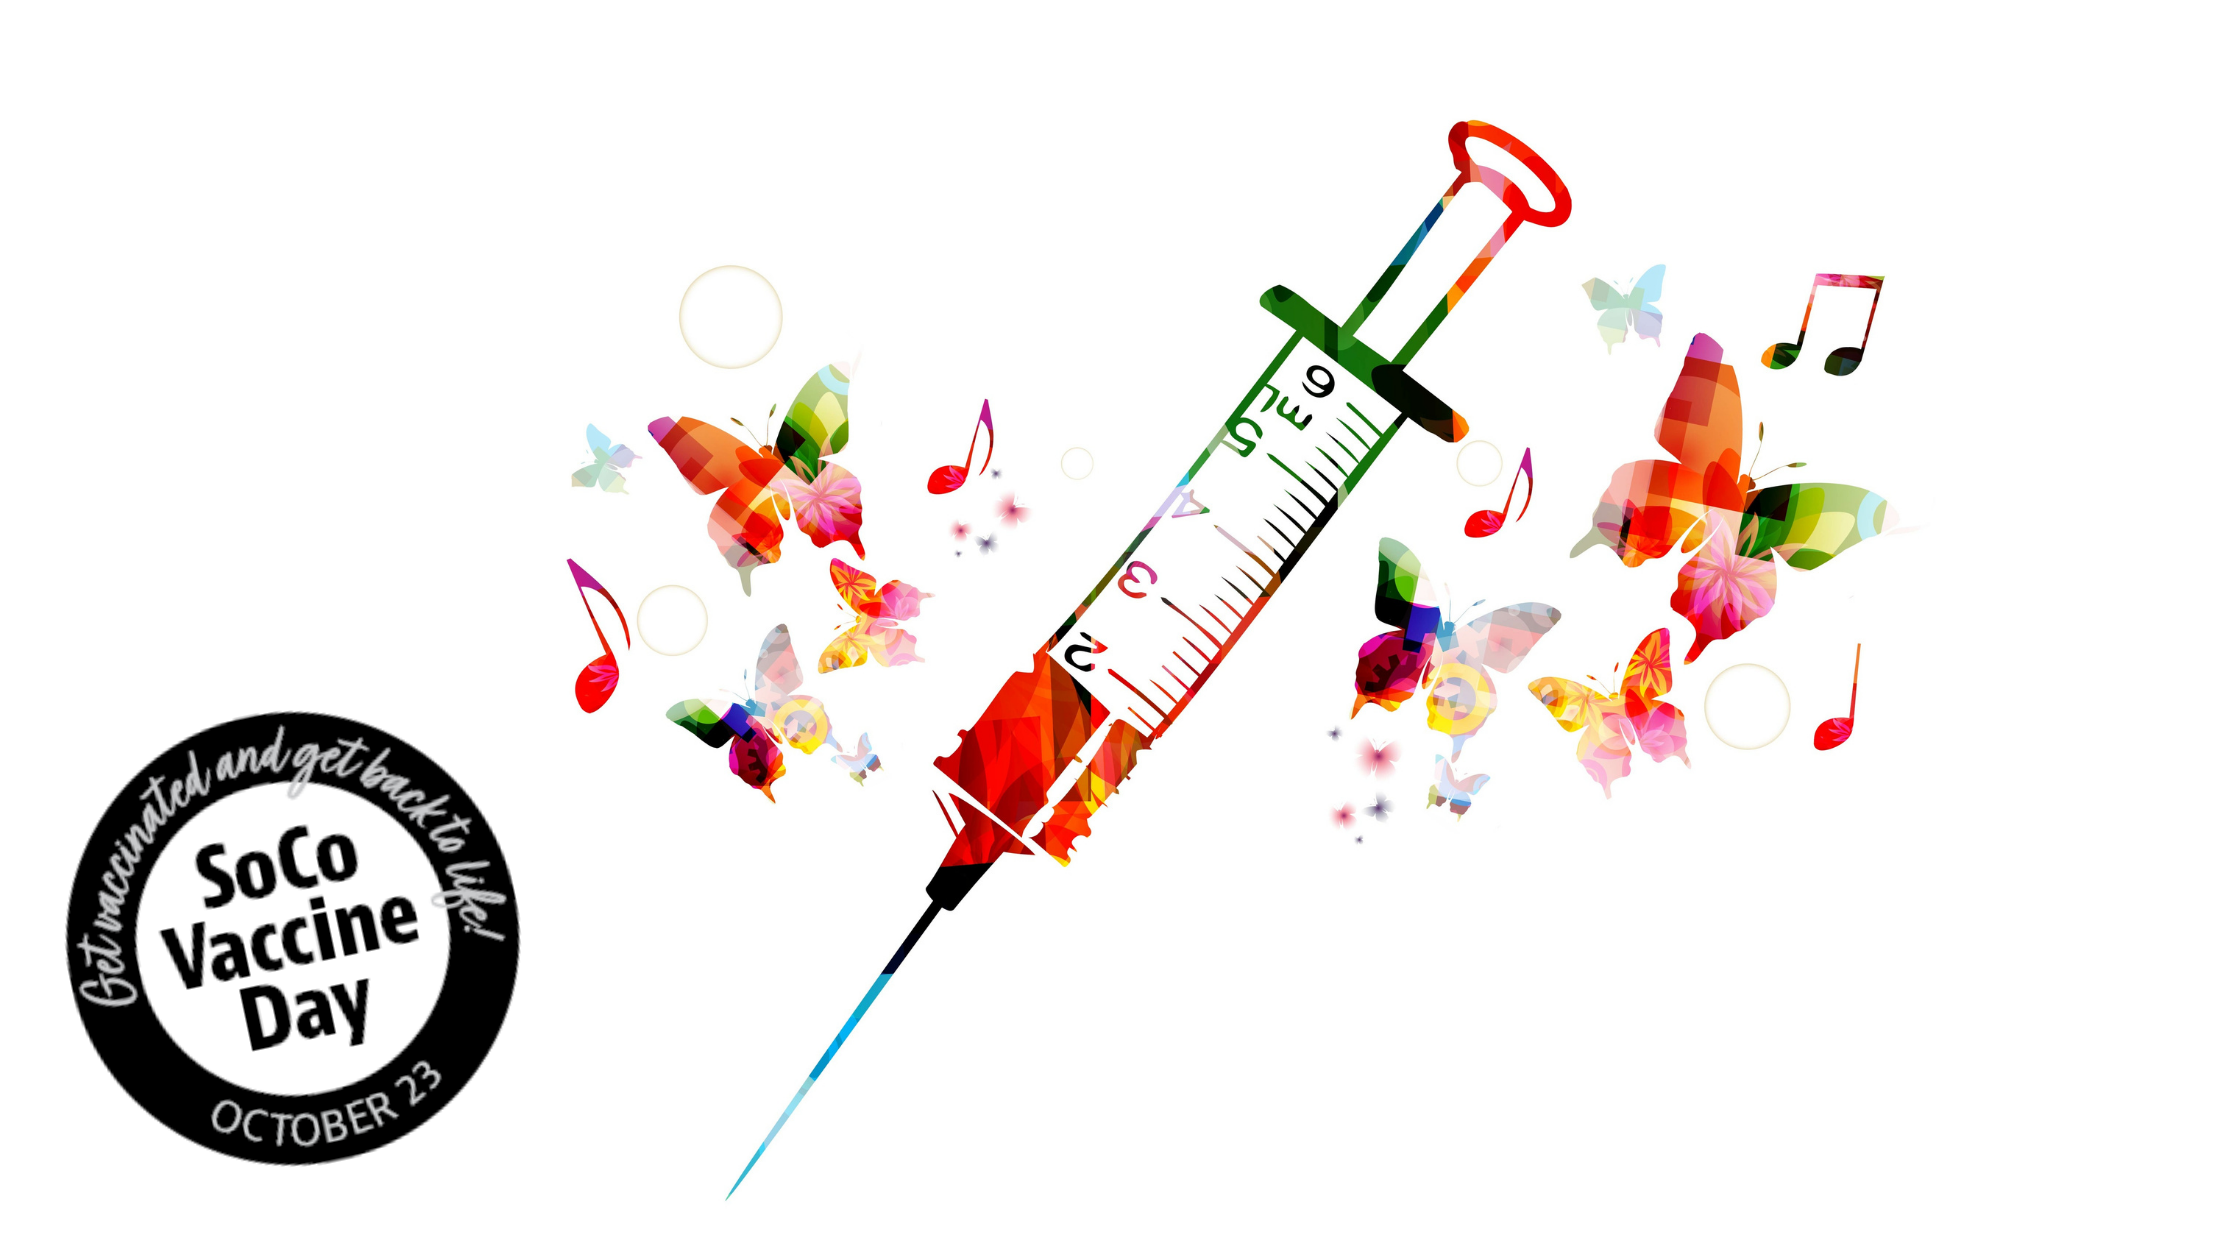 an colorful graphic of a needle surrounded by music notes, color splash and butterflies